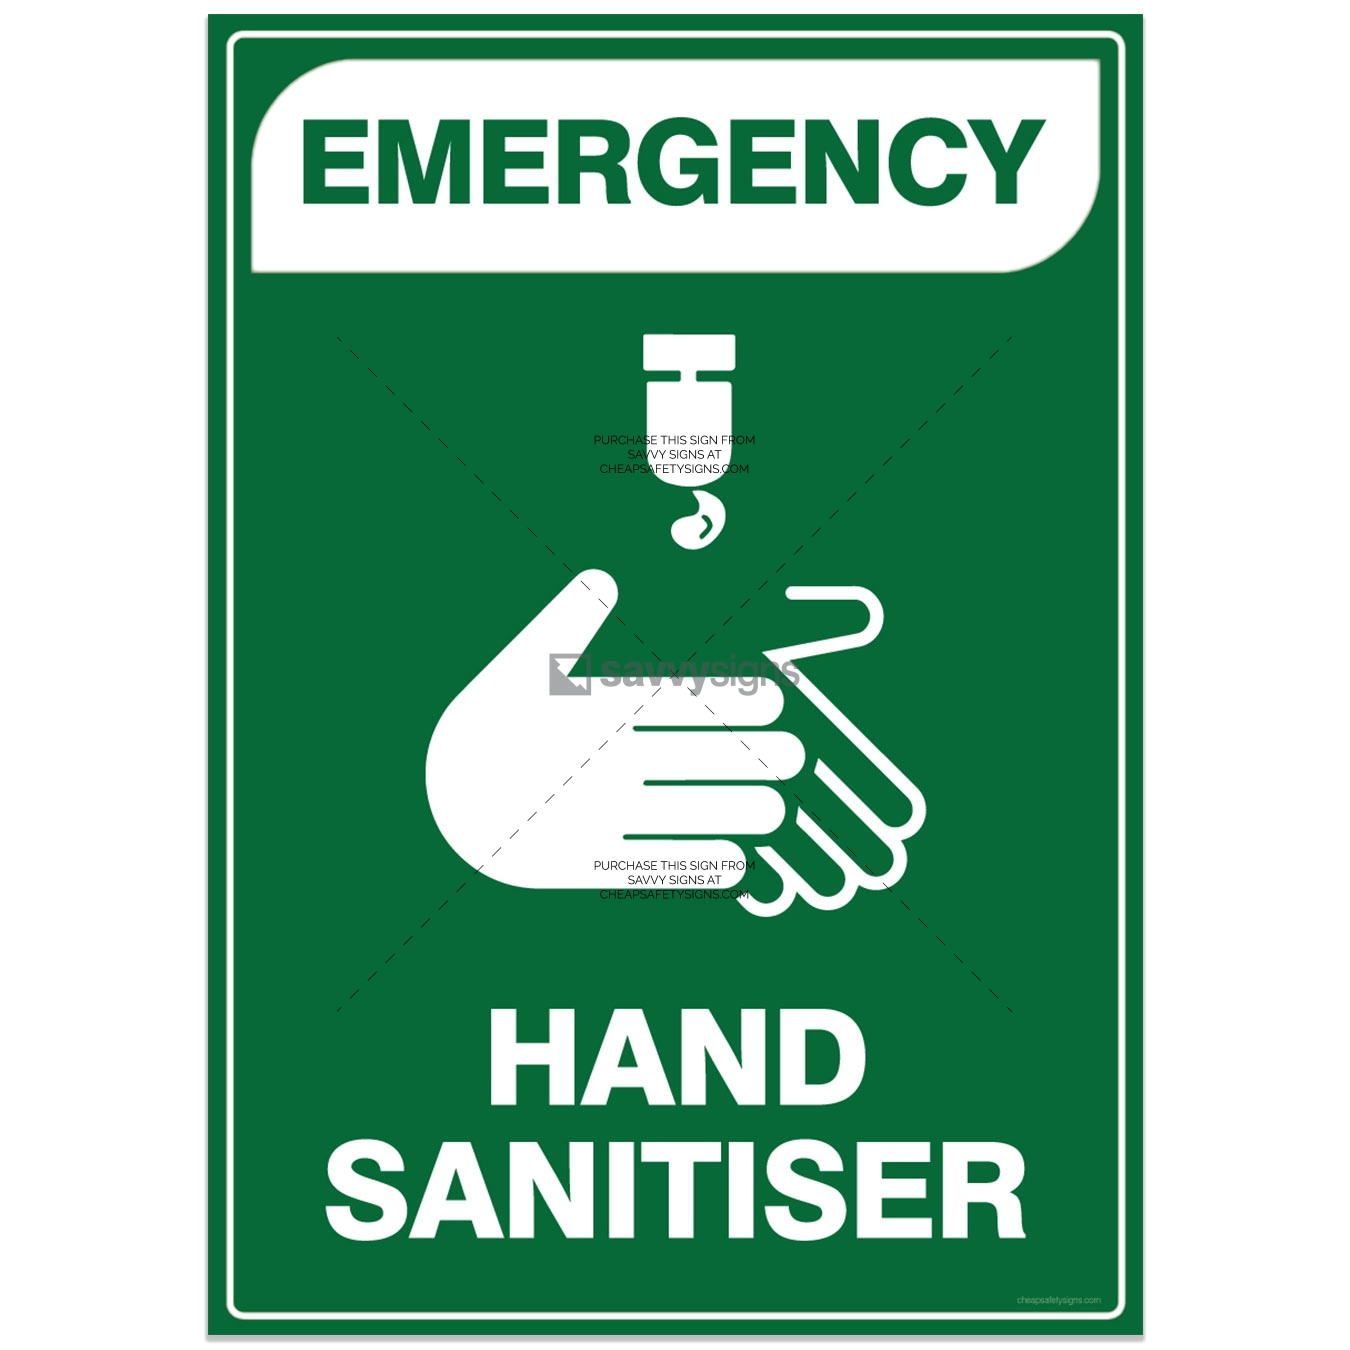 SSEME3044-EMERGENCY-Workplace-Safety-Signs_Savvy-Signs_v3